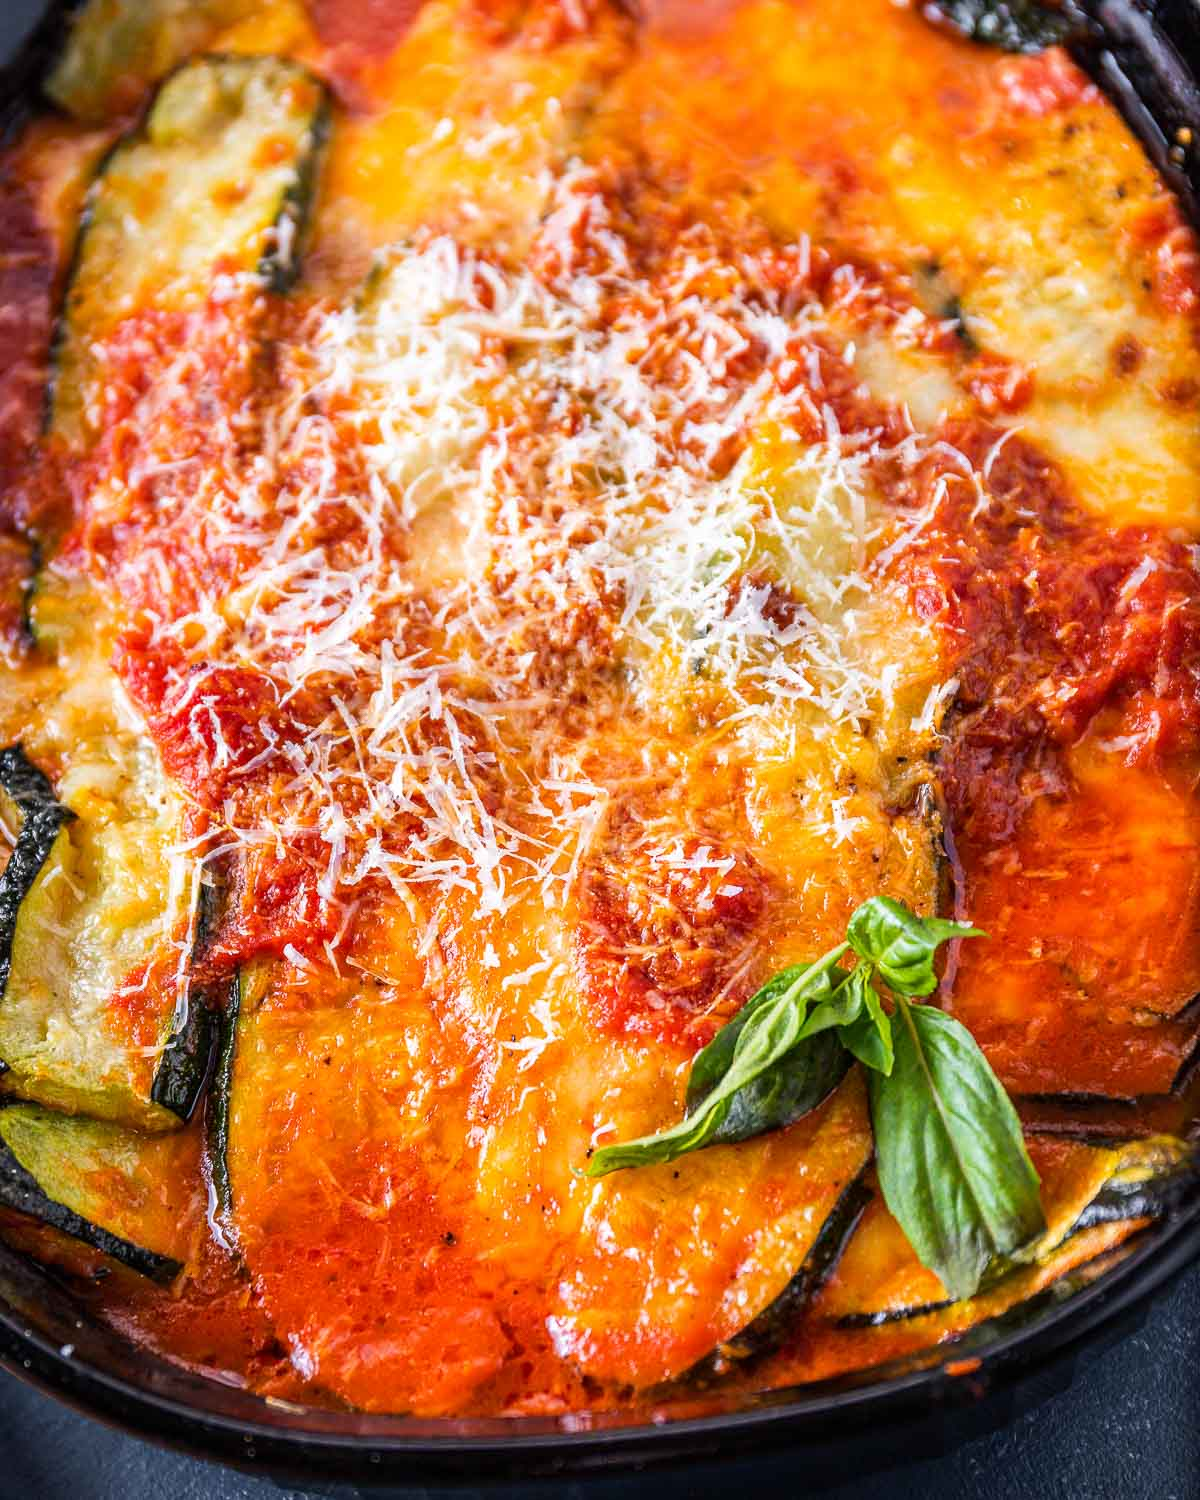 Black baking dish with cooked zucchini parm and basil garnish.